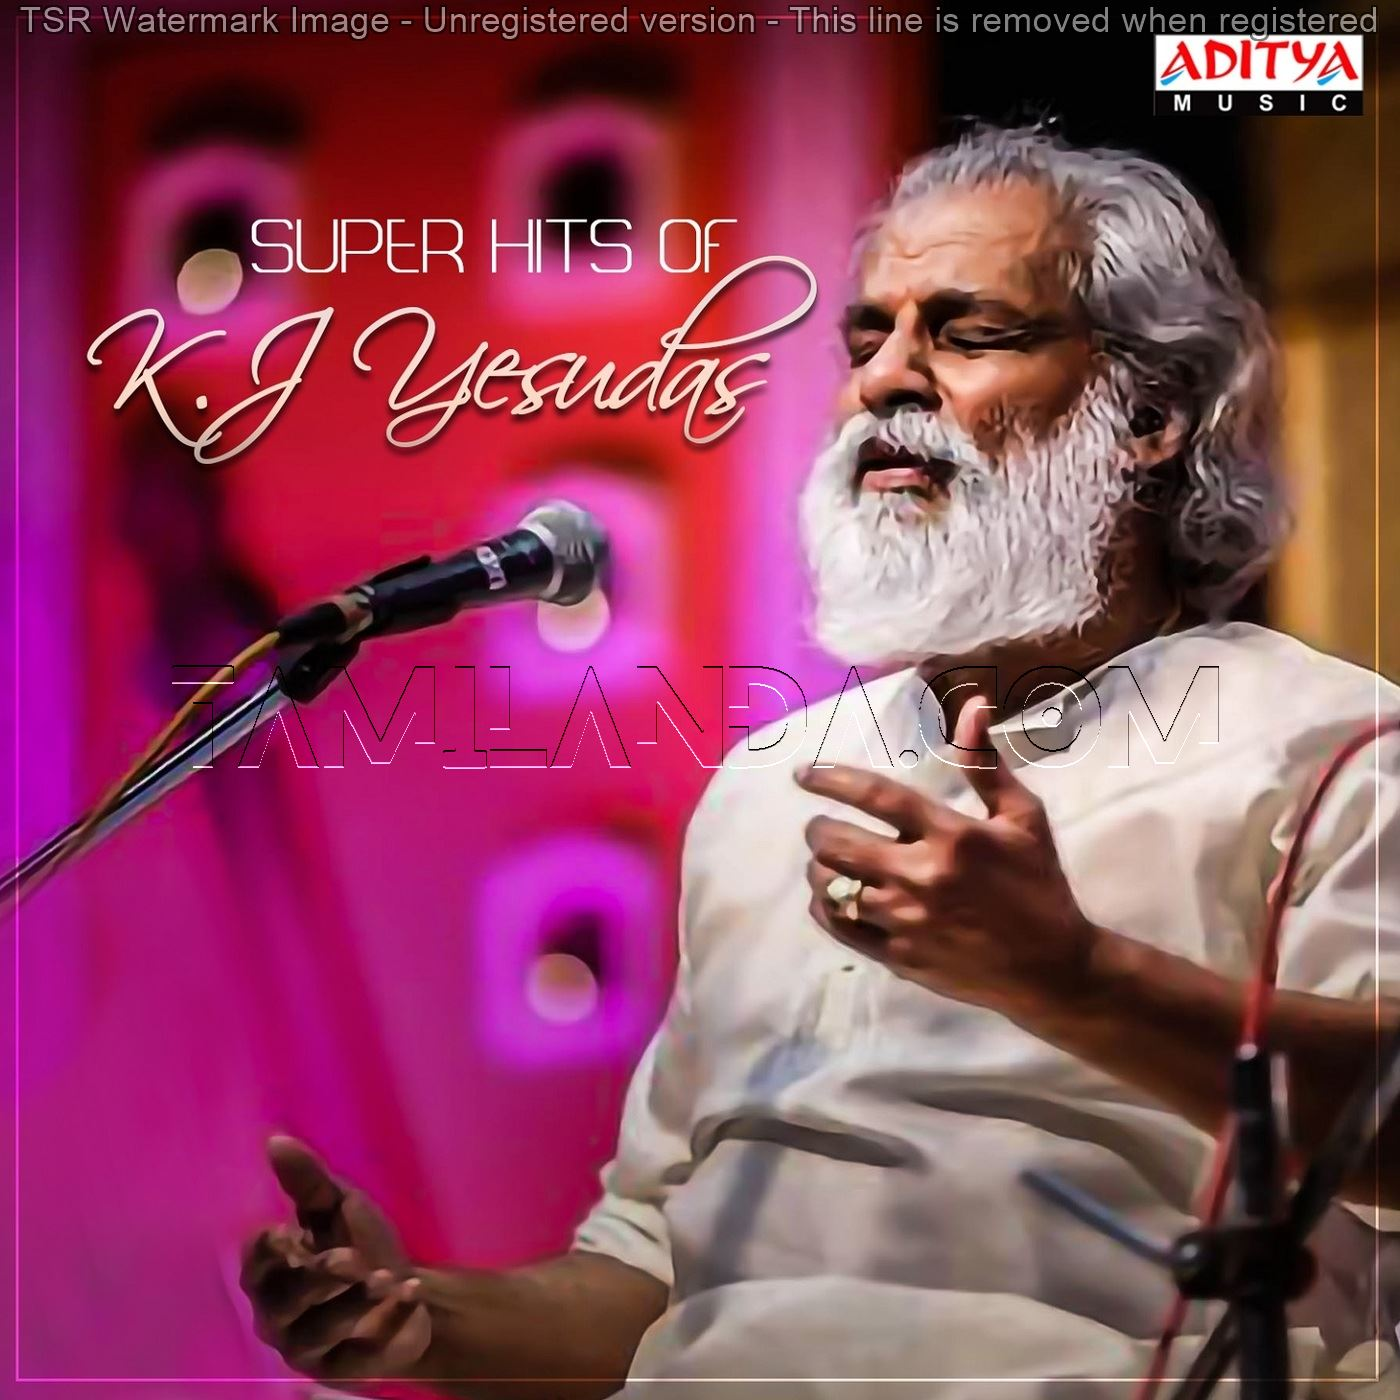 Super Hits Of K.J. Yesudas FLAC Songs (2019)